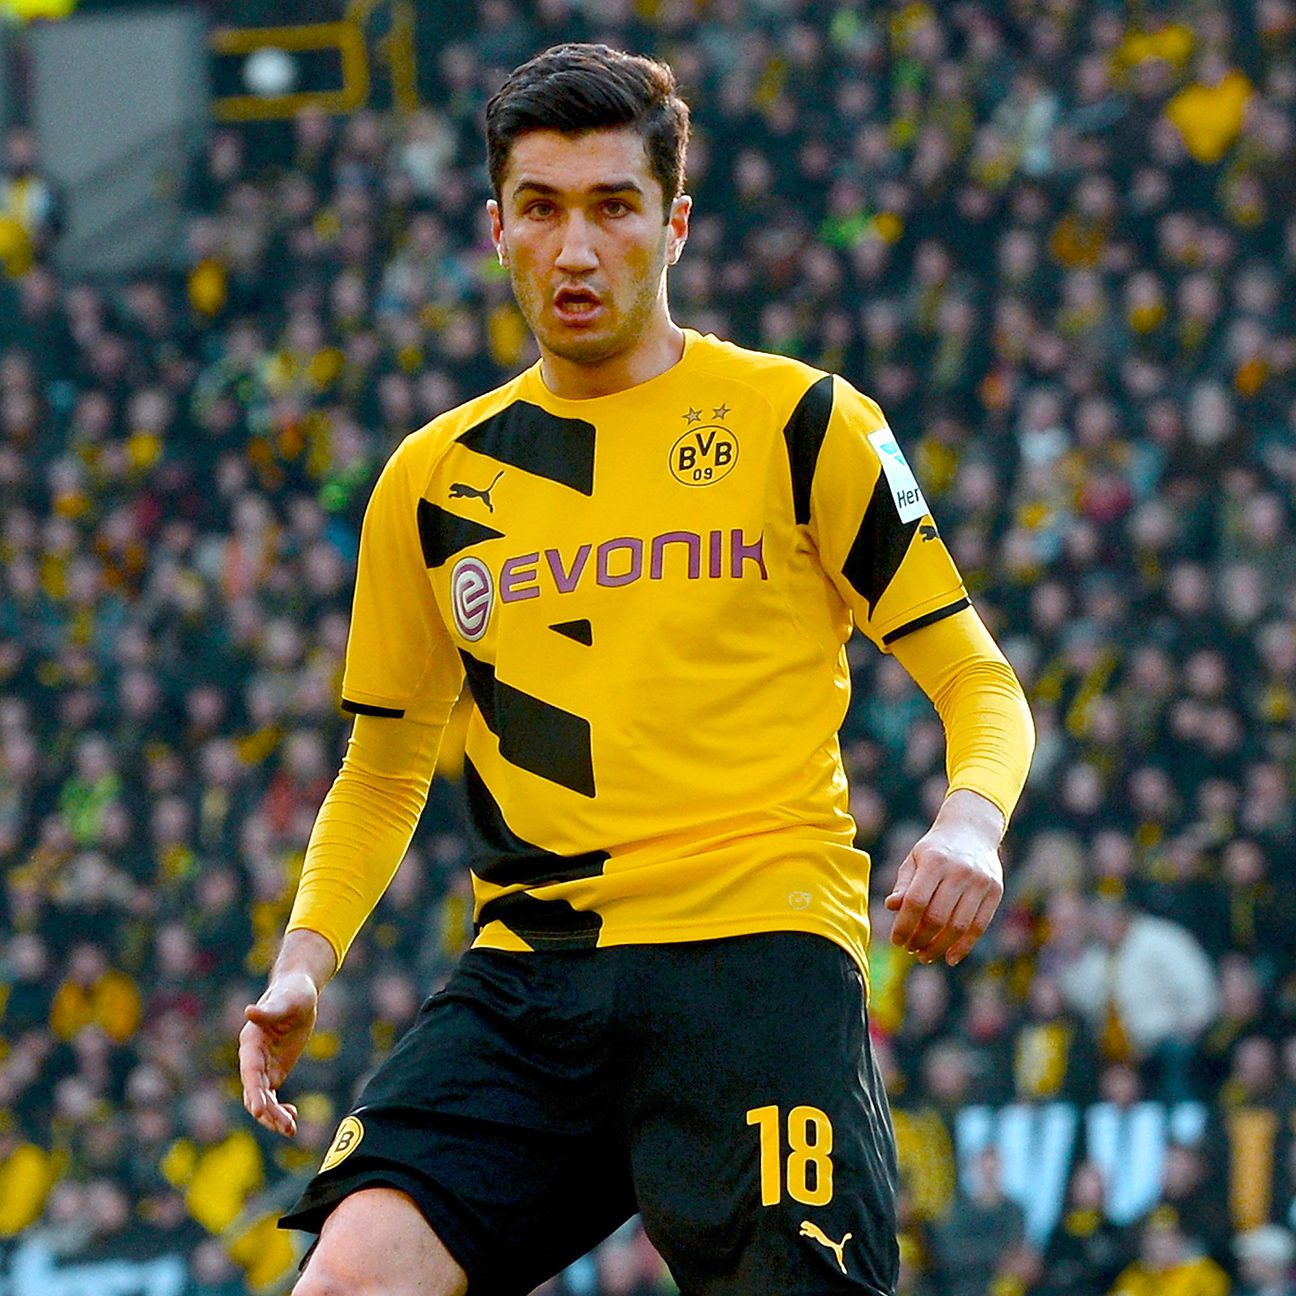 Nuri Sahin's playmaking abilities might be the boost Dortmund need in attack versus Koln.